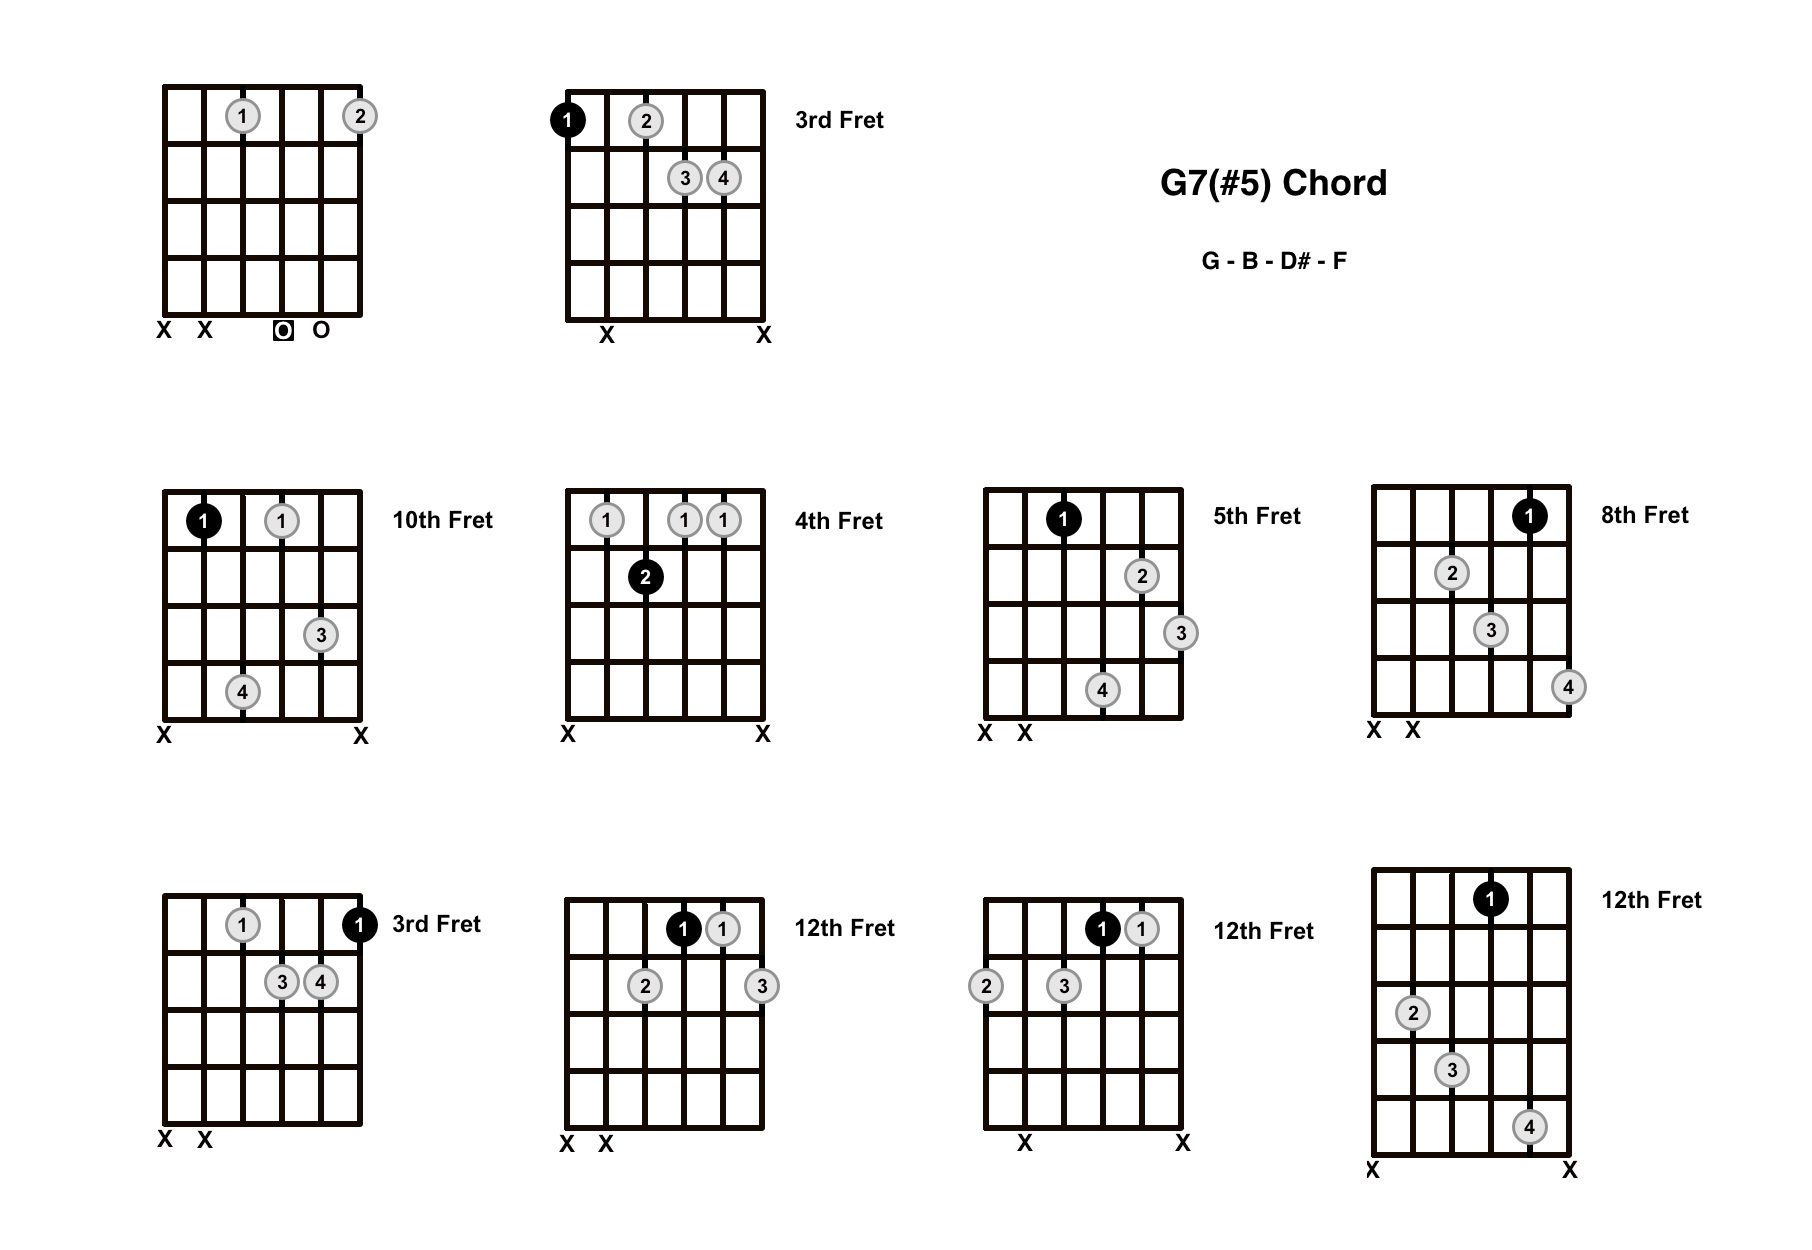 G Augmented 7 Chord On The Guitar (G7#5, G+7) – Diagrams, Finger Positions and Theory